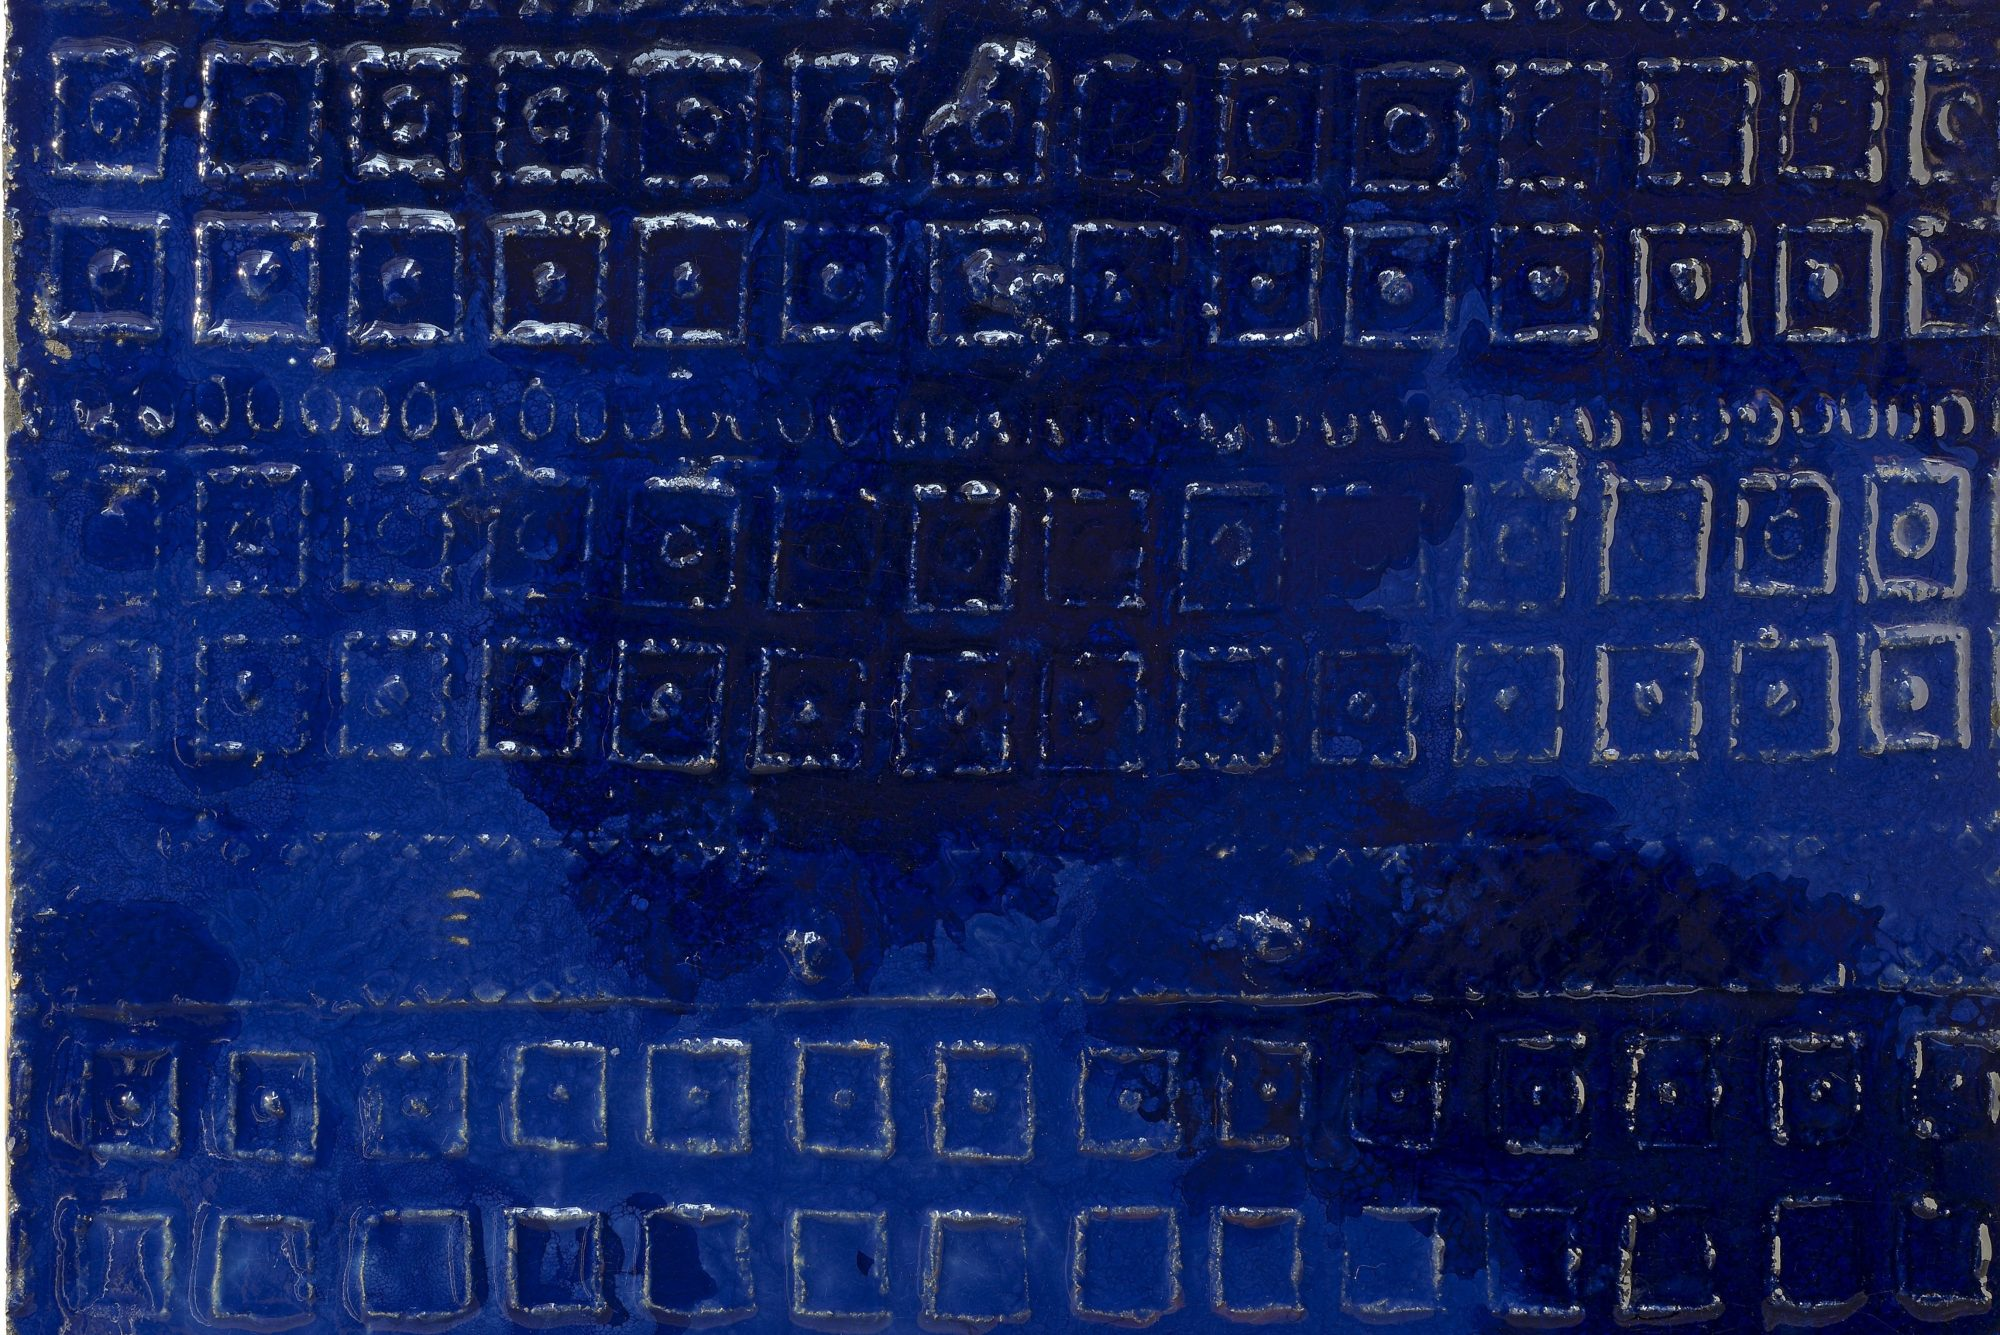 Fausto Melotti |  Bas relief panel - blue squares